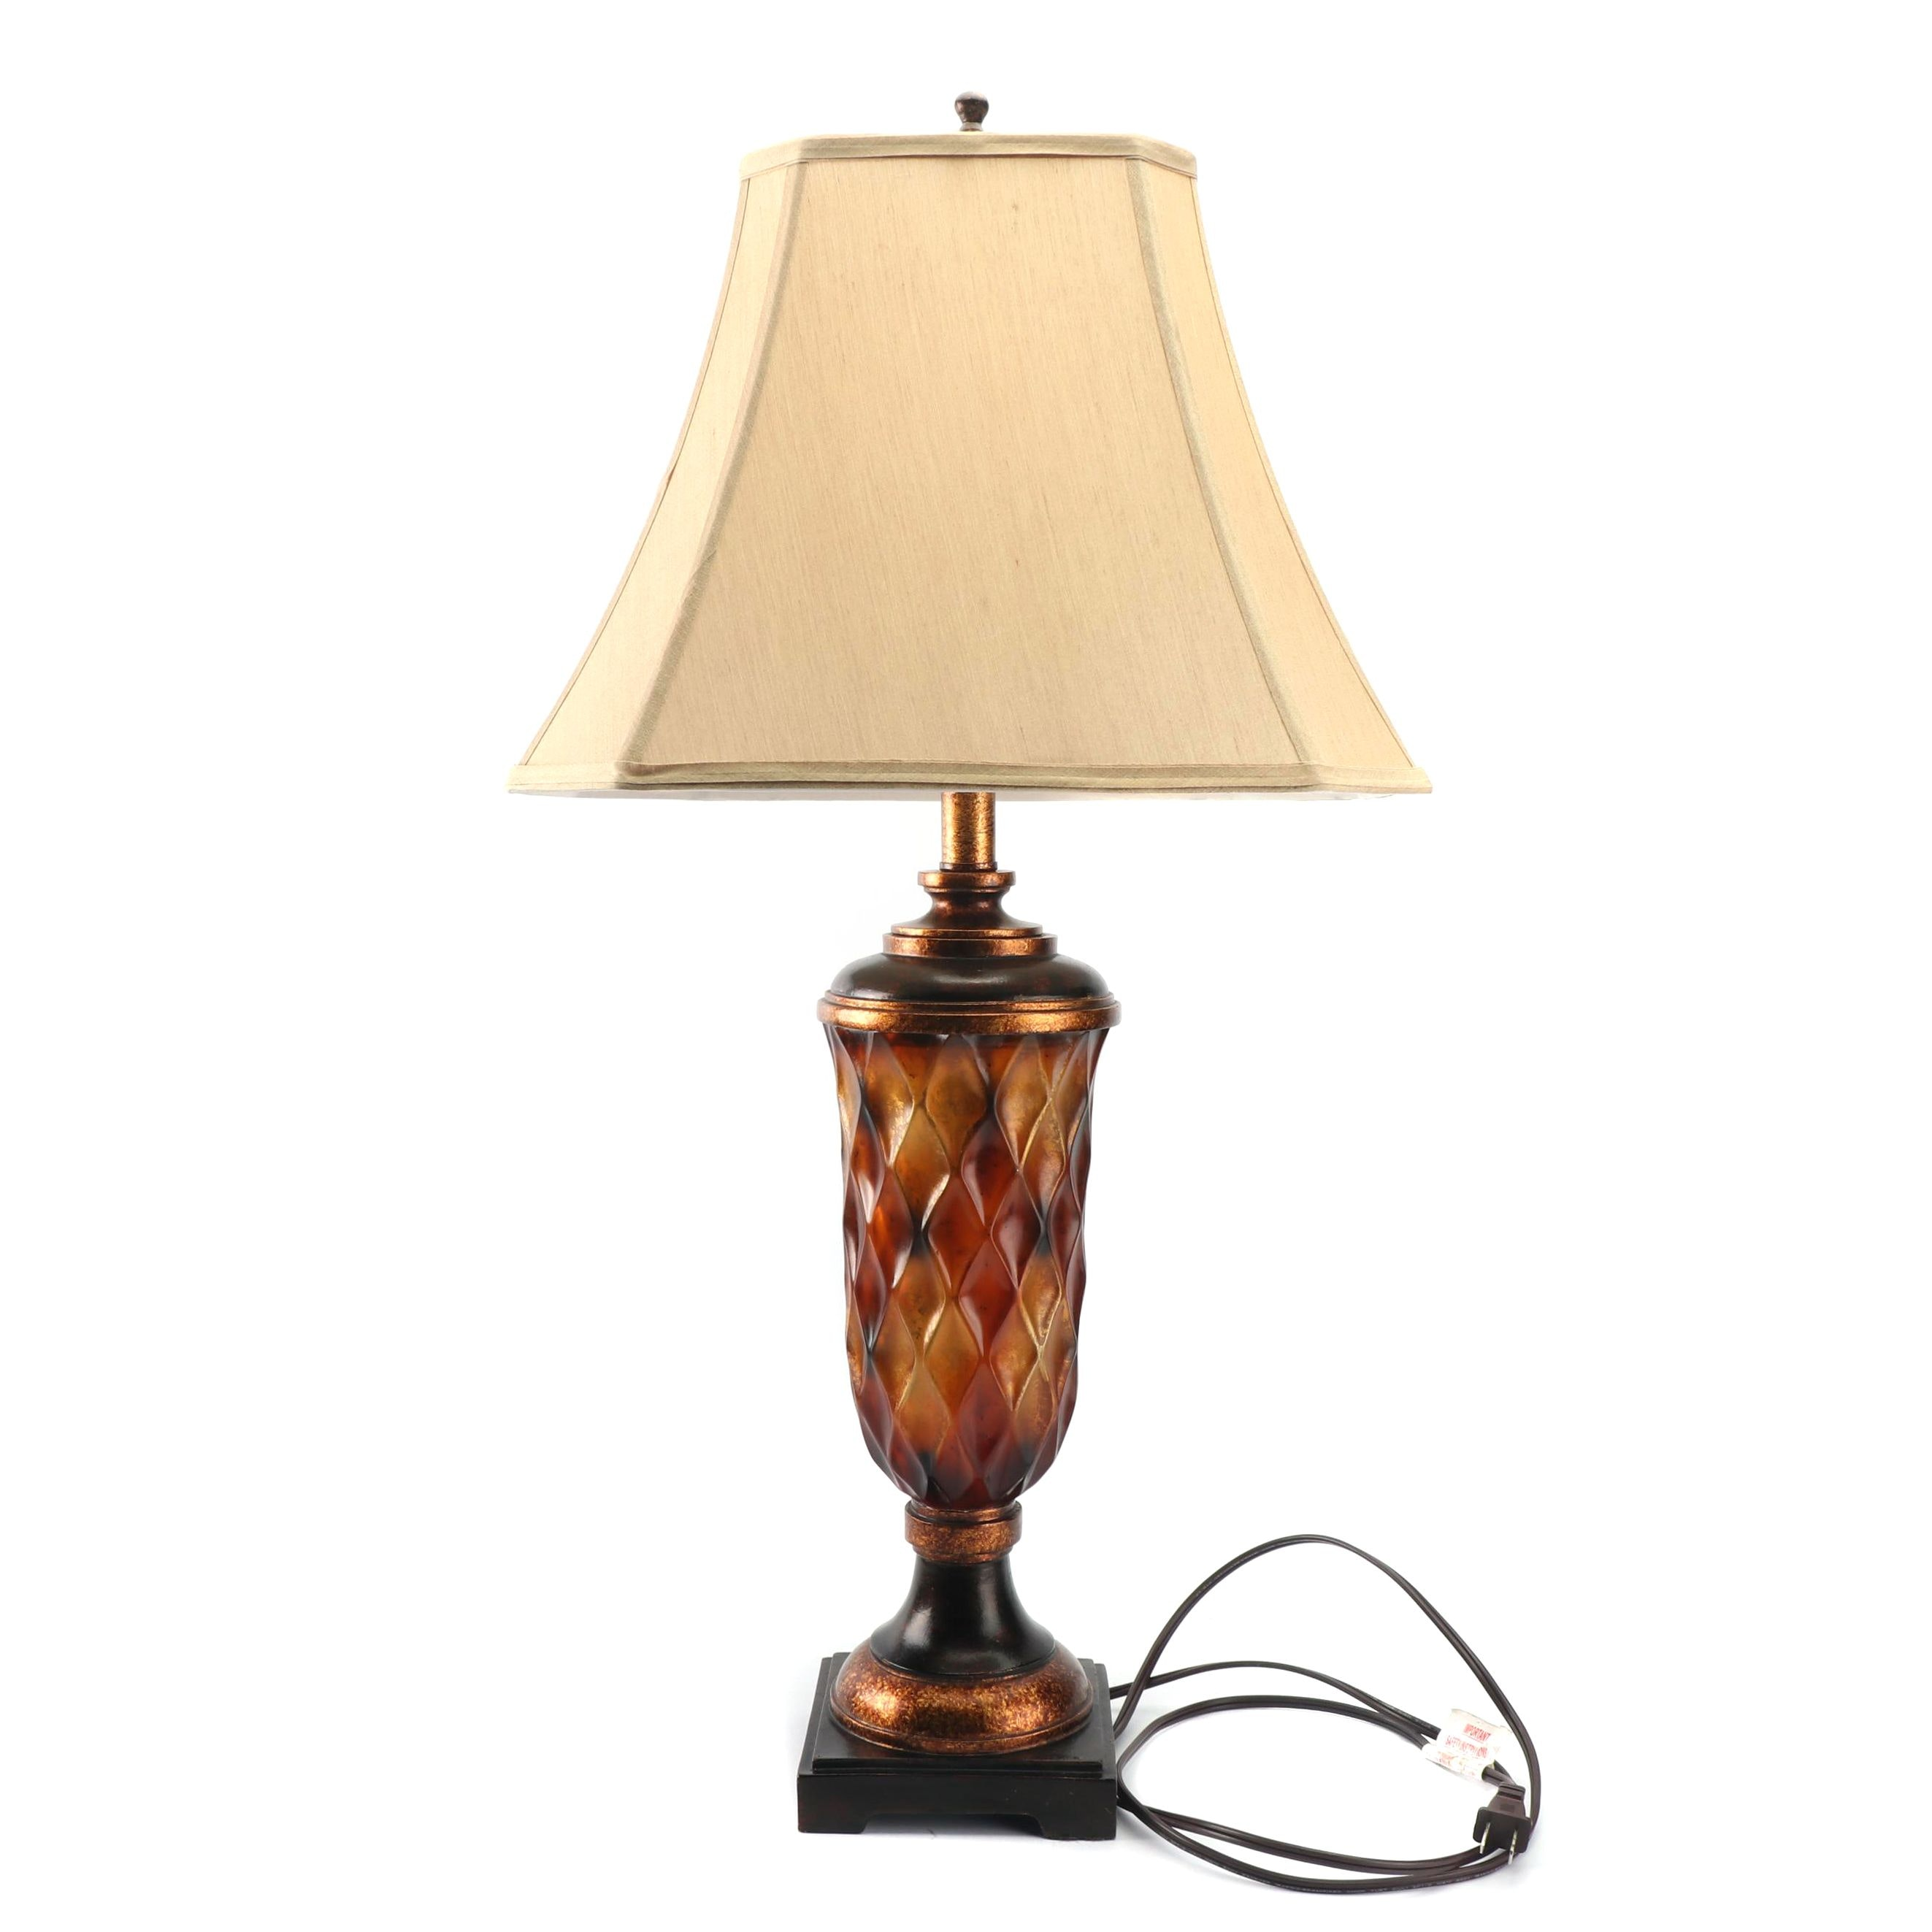 Neoclassical Style Urn Shaped Table Lamp